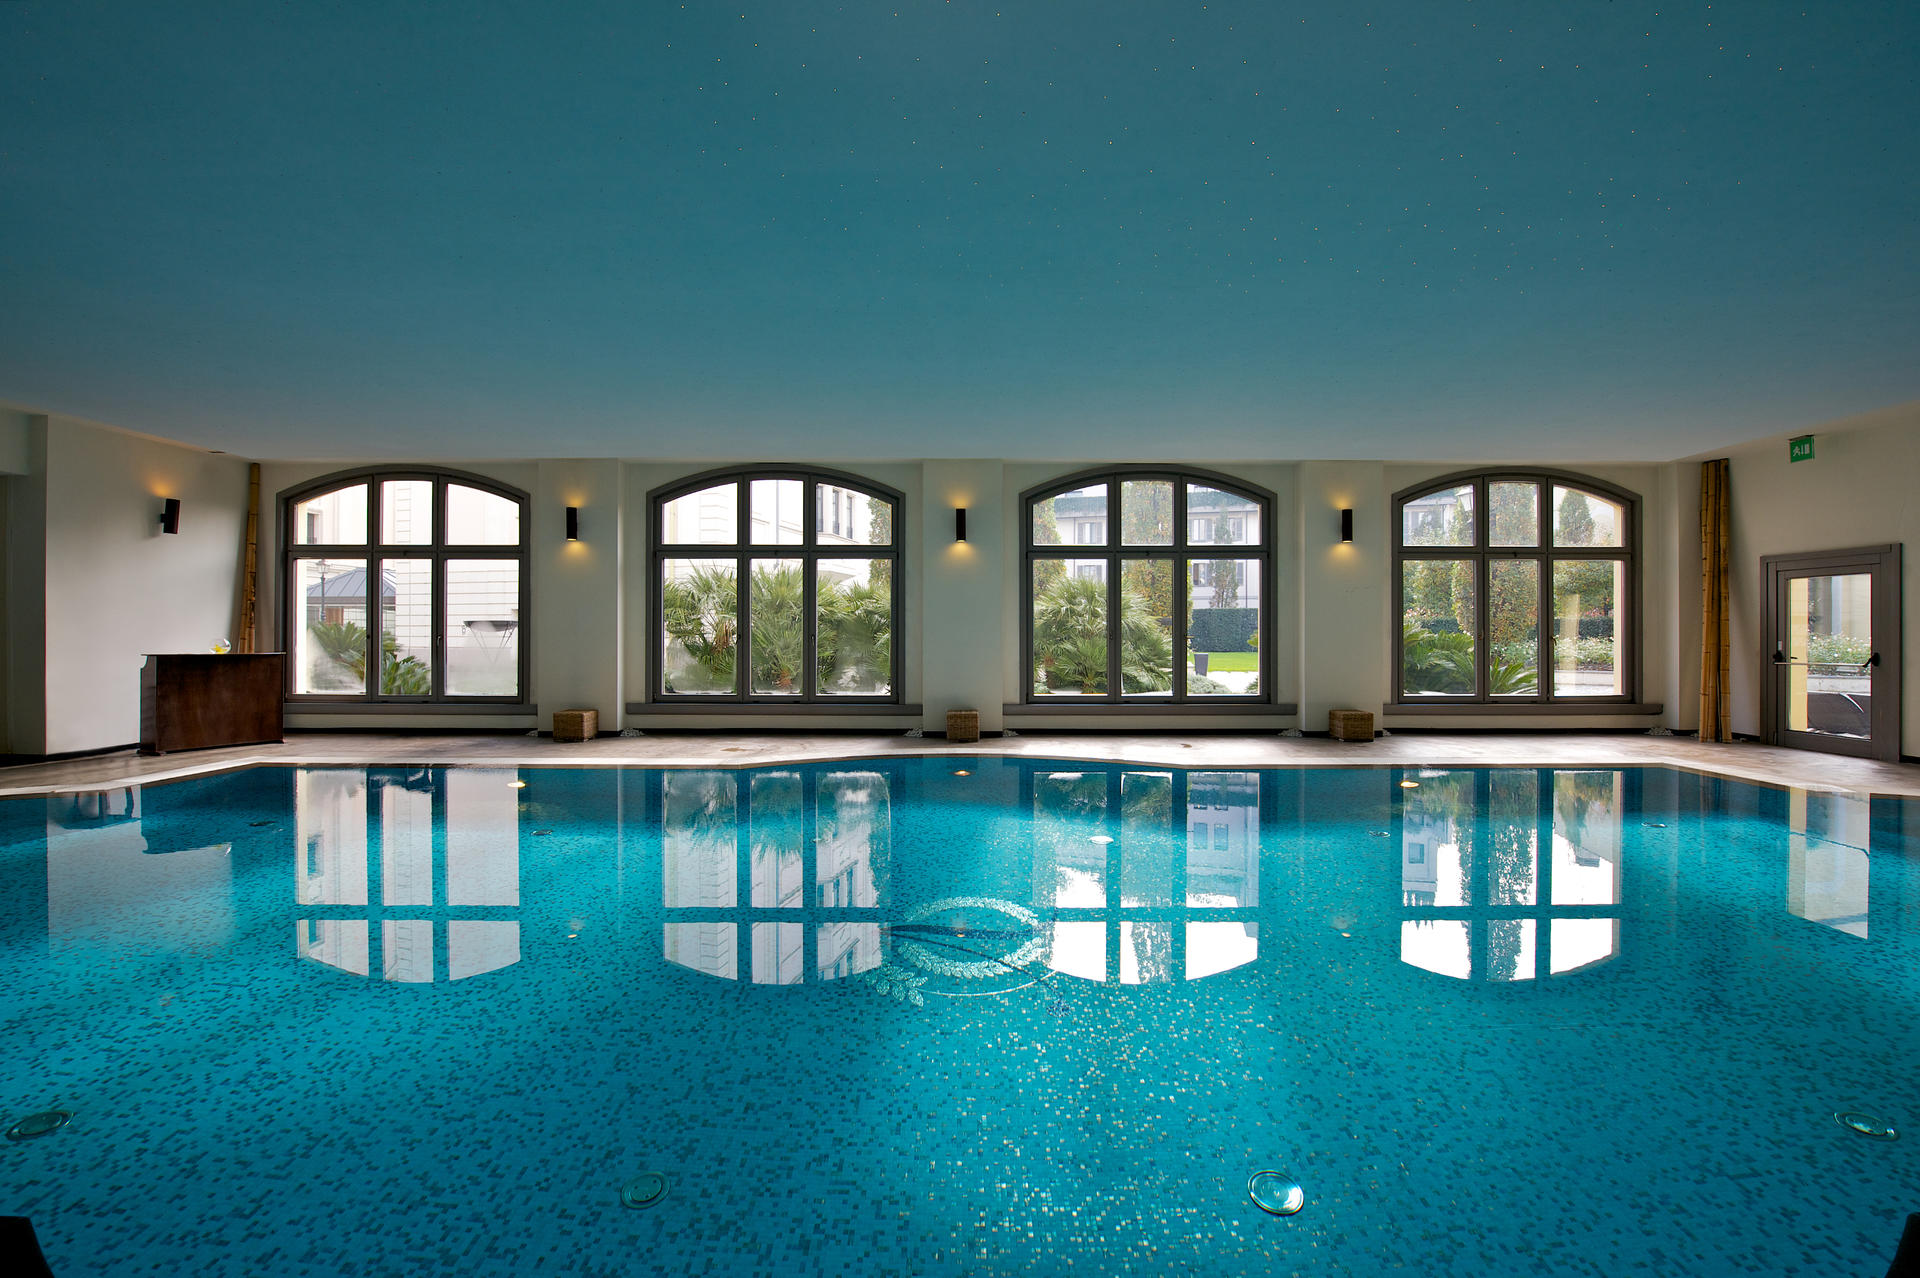 Pool at Grand Visconti Palace in Milan